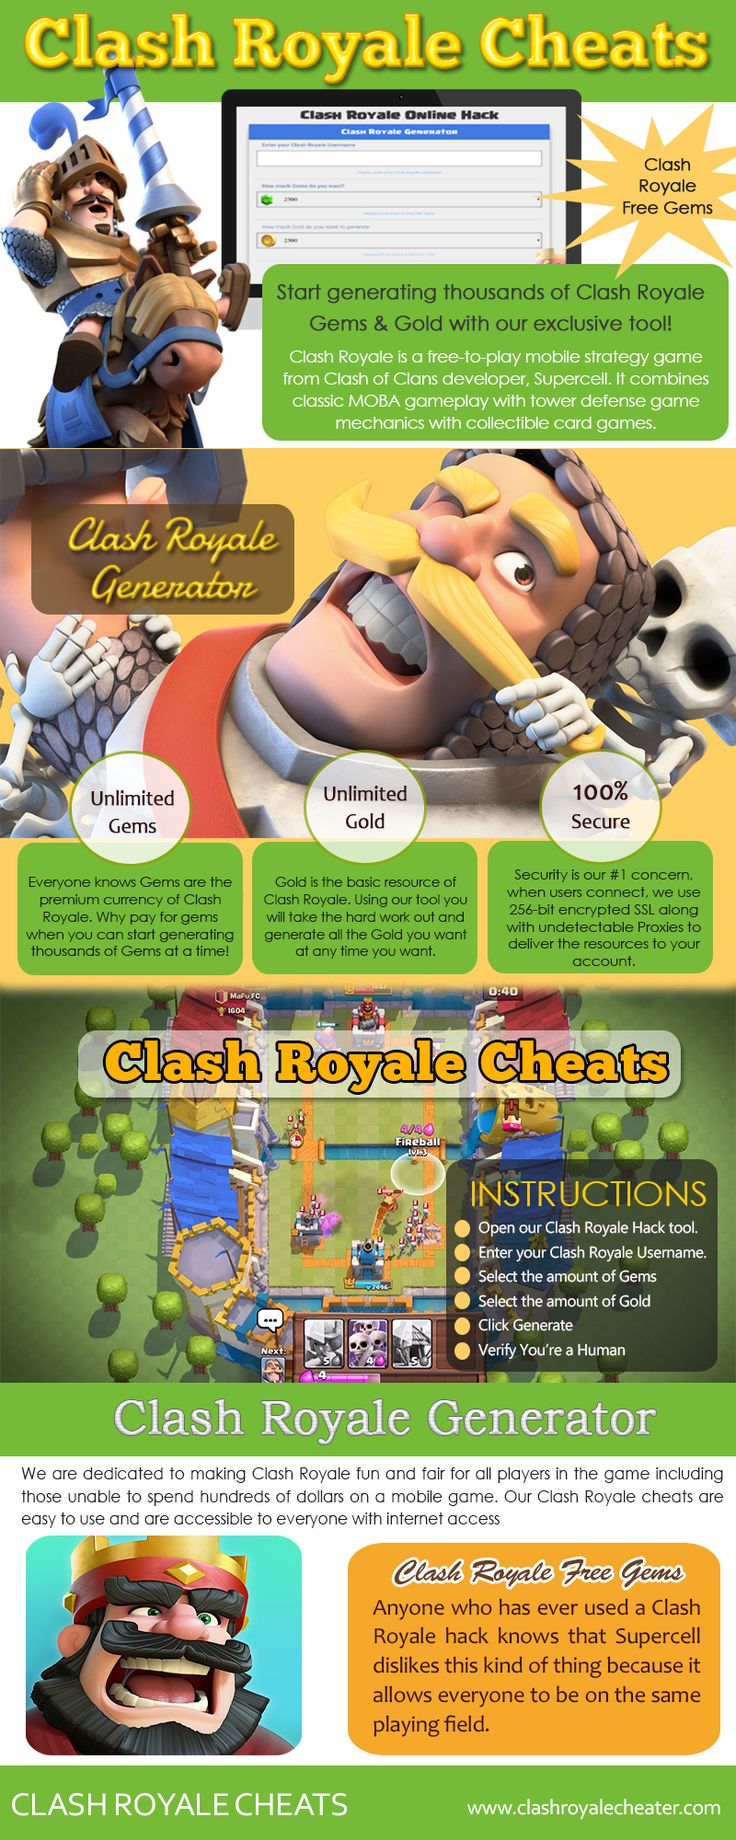 Visit this site http://www.apsense.com/brand/clashroyalecheater for more information on Clash royale cheats. Many traditional board games are now being played online, and many people want the skills necessary to win. Clash royale cheats will give you a much better chance at winning, even if you are faced with strong competition. Having access to game cheats will allow you to enter any room you choose and beat your opponents.  Follow Us: http://uid.me/clashroyale_cheats